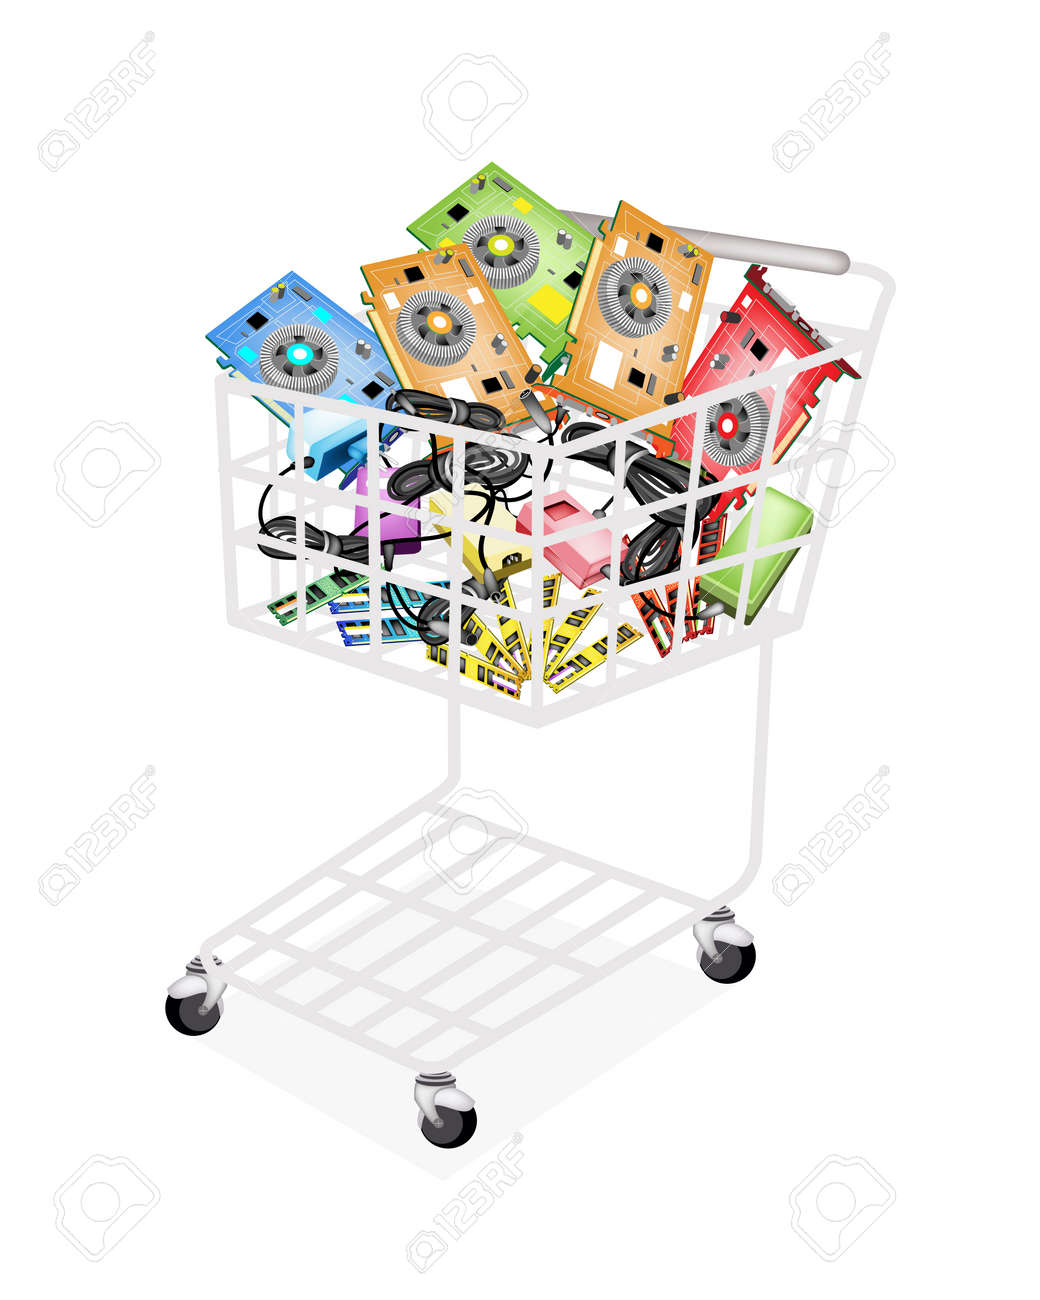 A Shopping Cart Full with RAM, Computer Graphic Card or Video